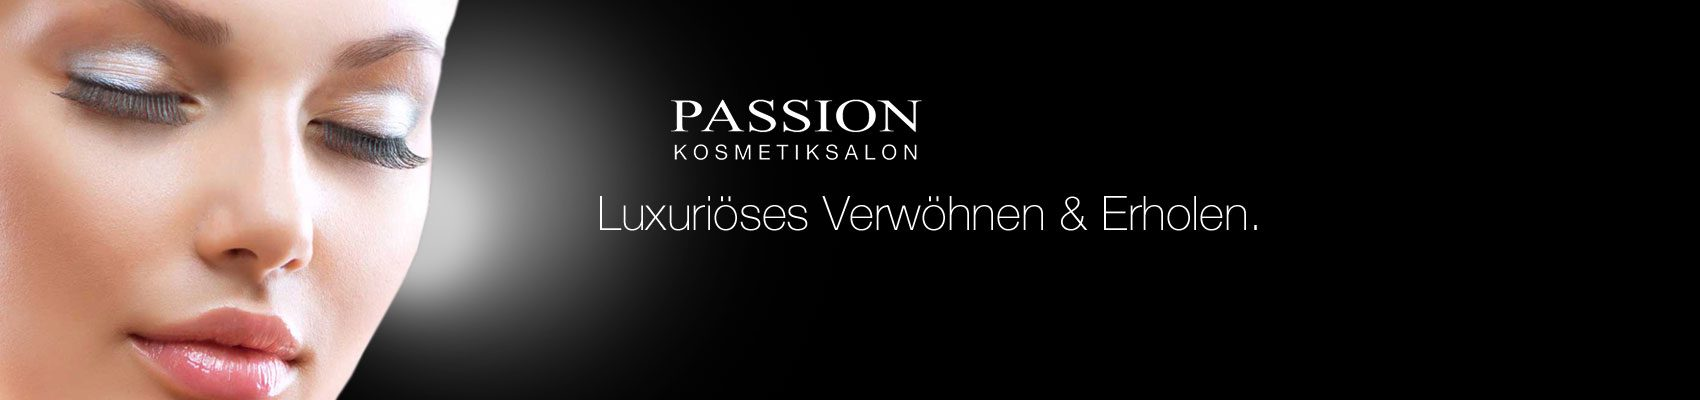 kosmetiksalon-passion berlin